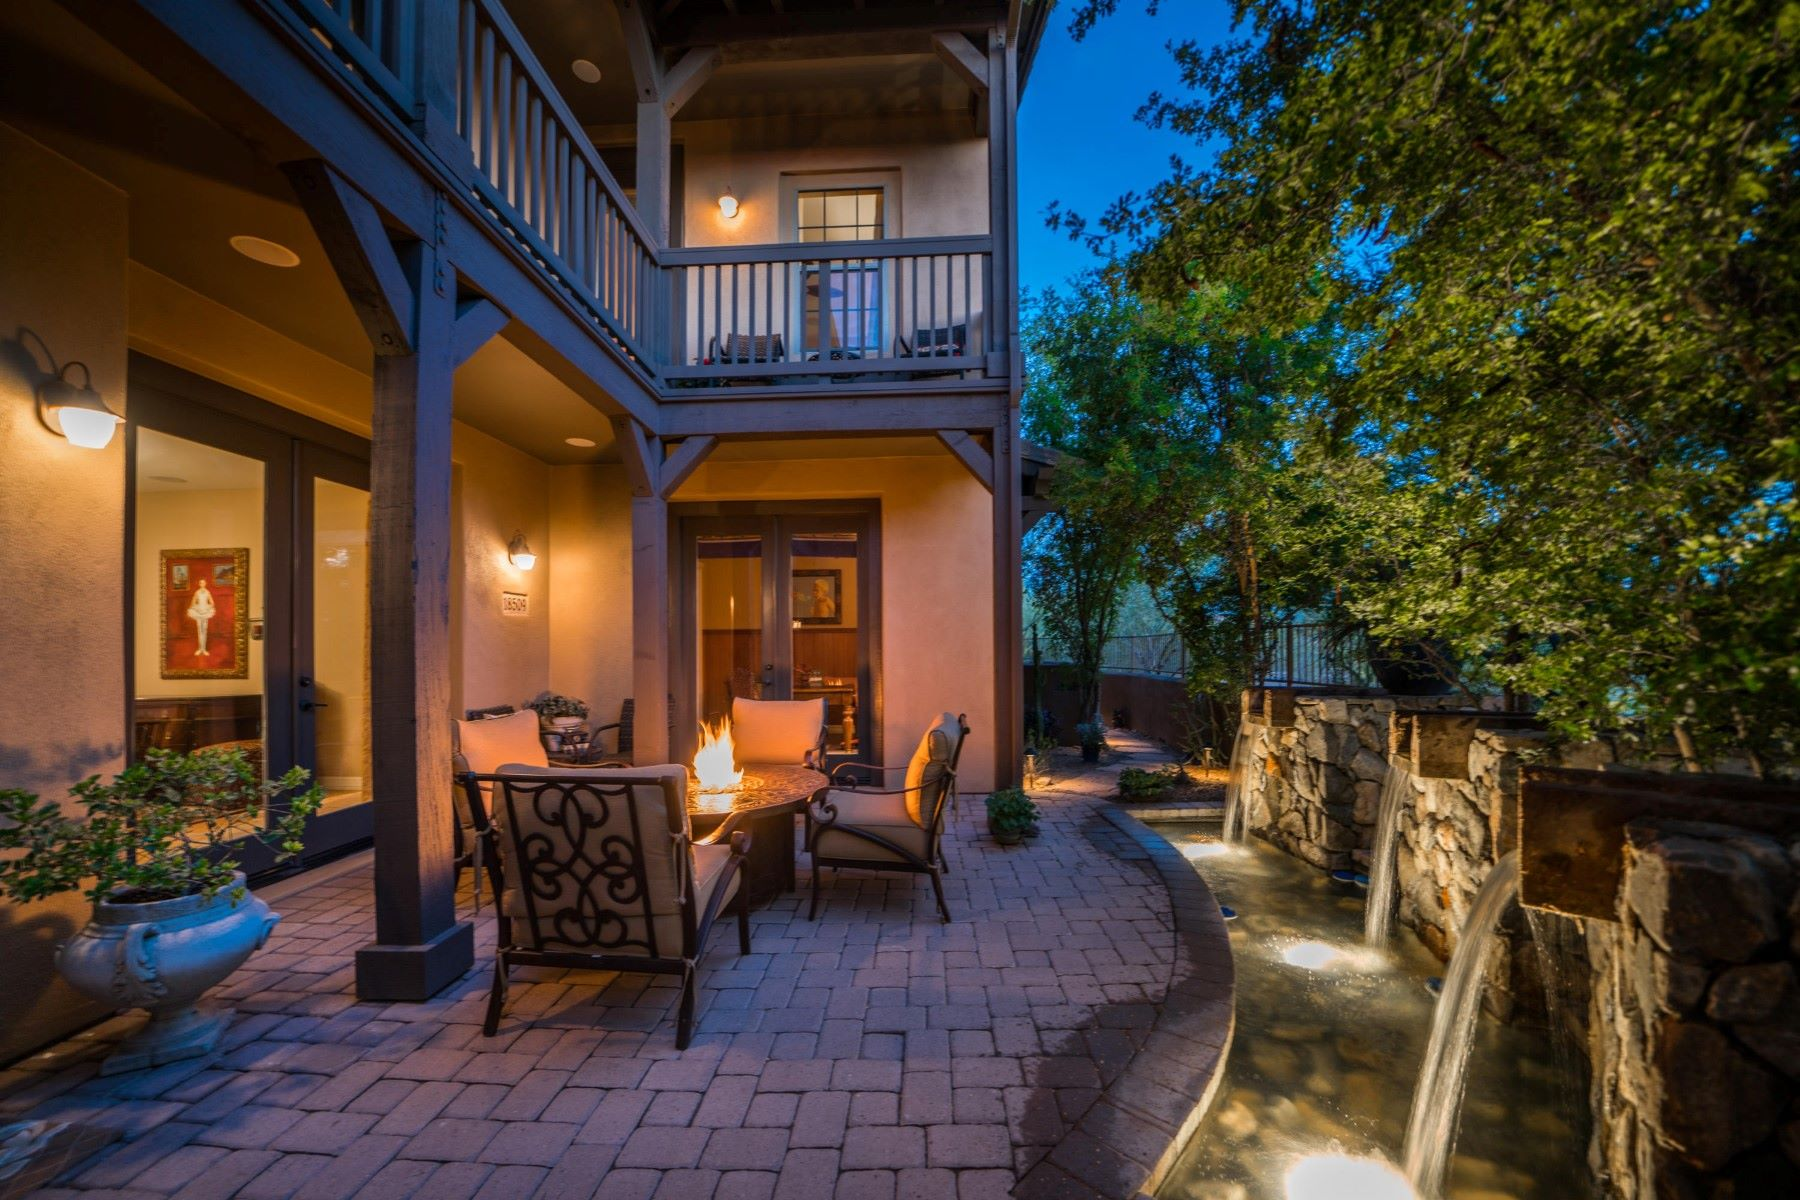 Townhouse for Sale at Highly Upgraded Villa 18509 N 94TH ST Scottsdale, Arizona 85255 United States